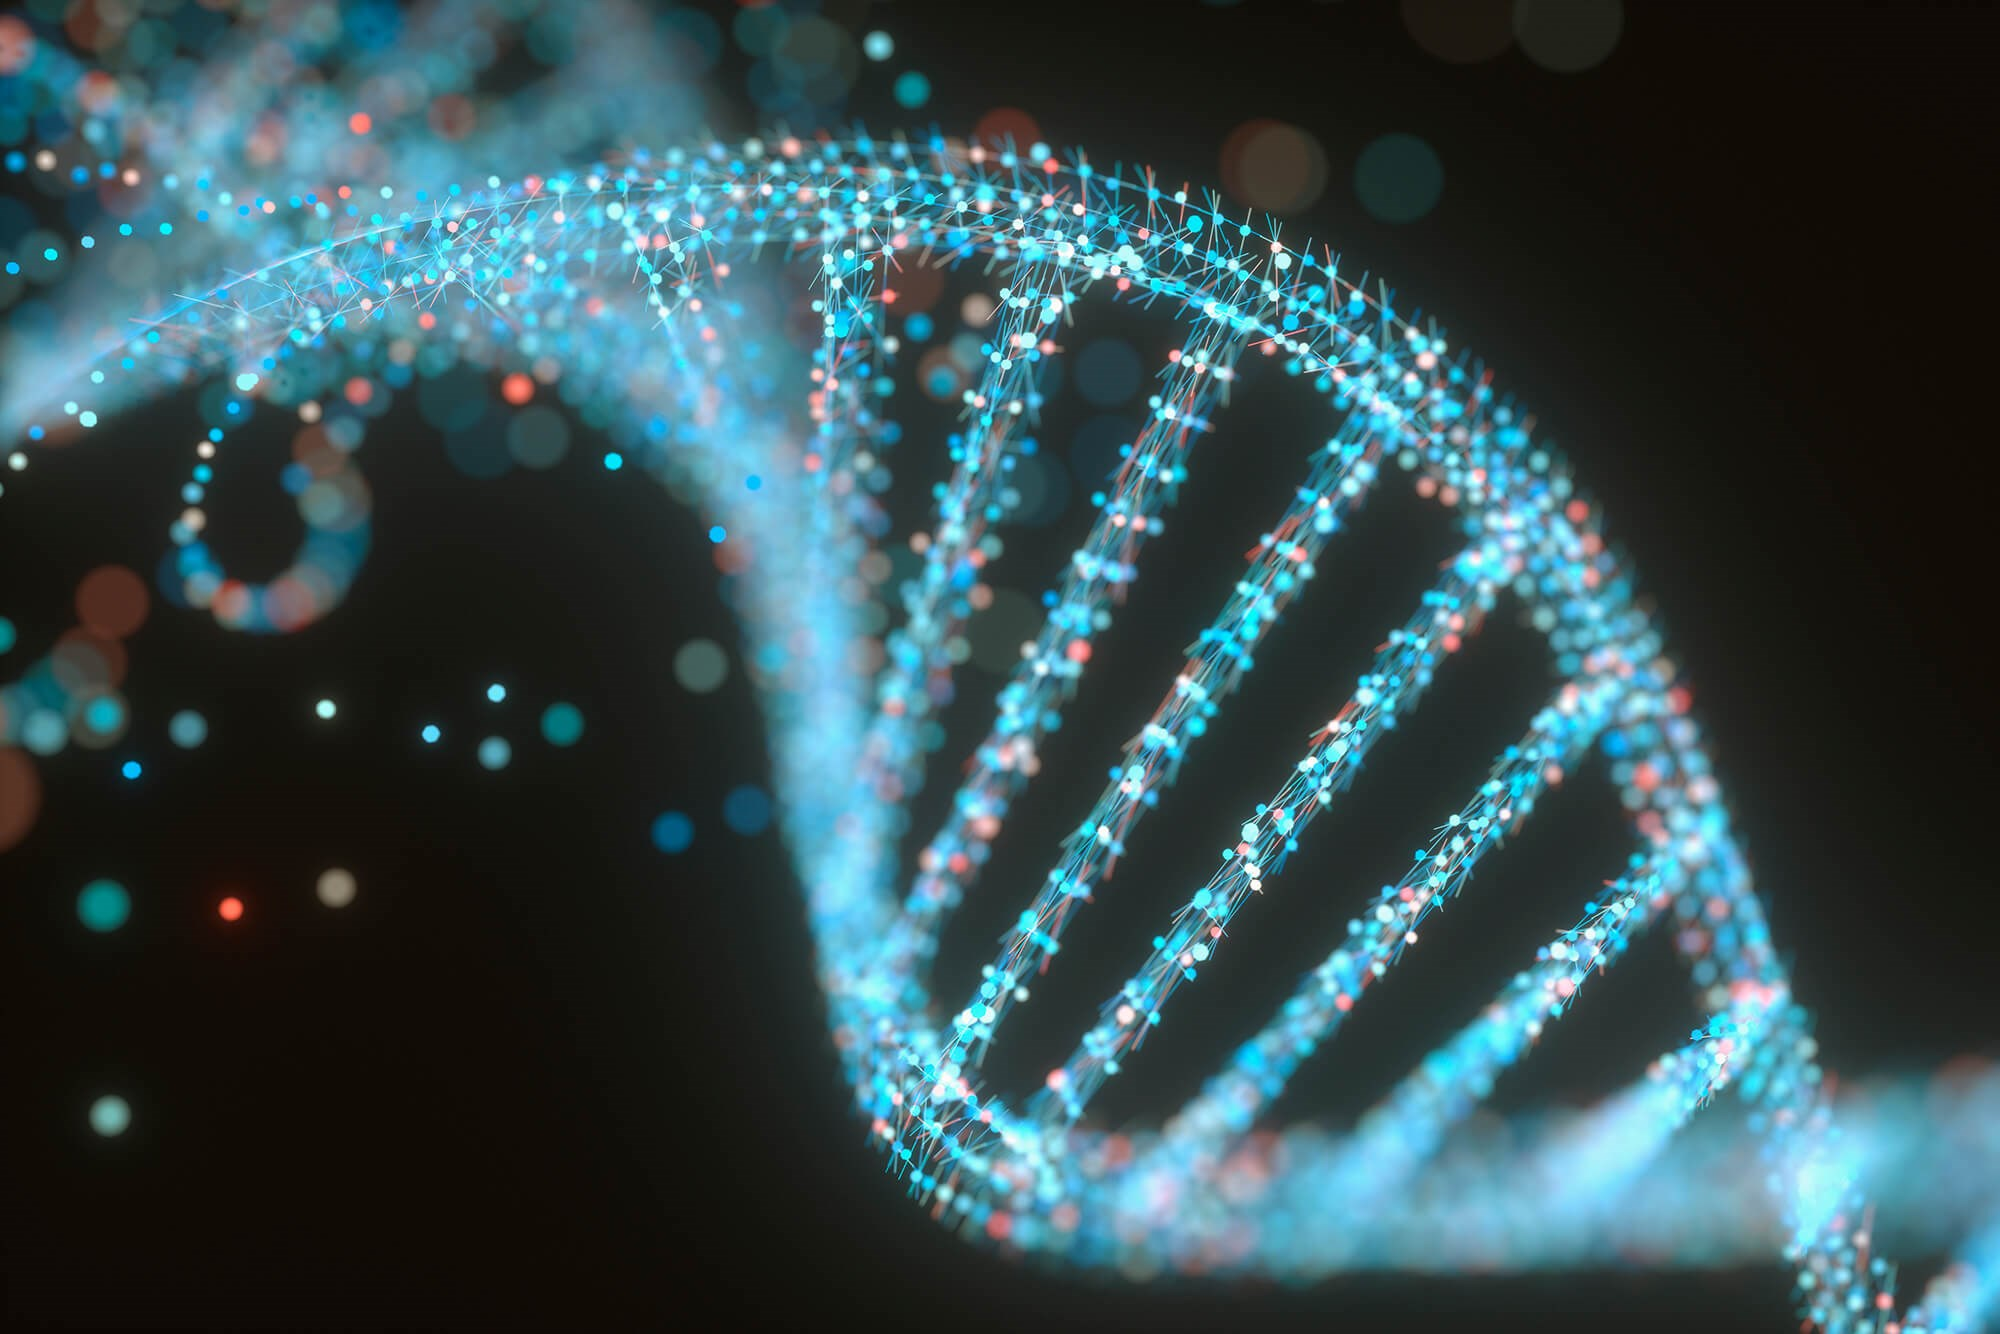 High Expression of DNA Repair Genes at Diagnosis Predictive of Early Relapse in Pediatric ALL